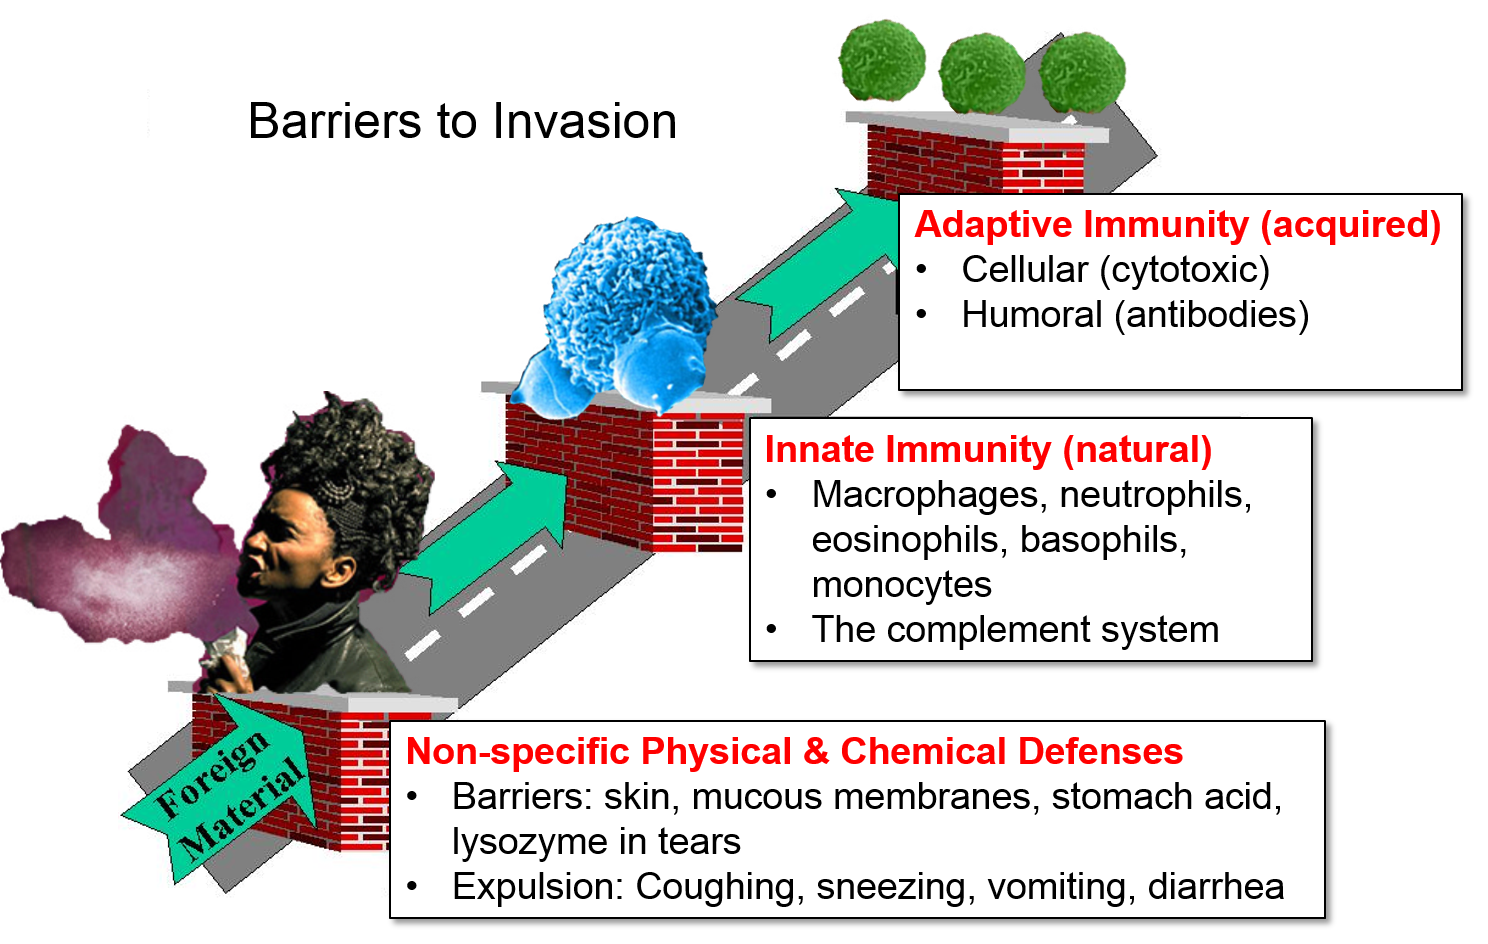 Shot clipart immunity. Defense mechanisms general nonspecific